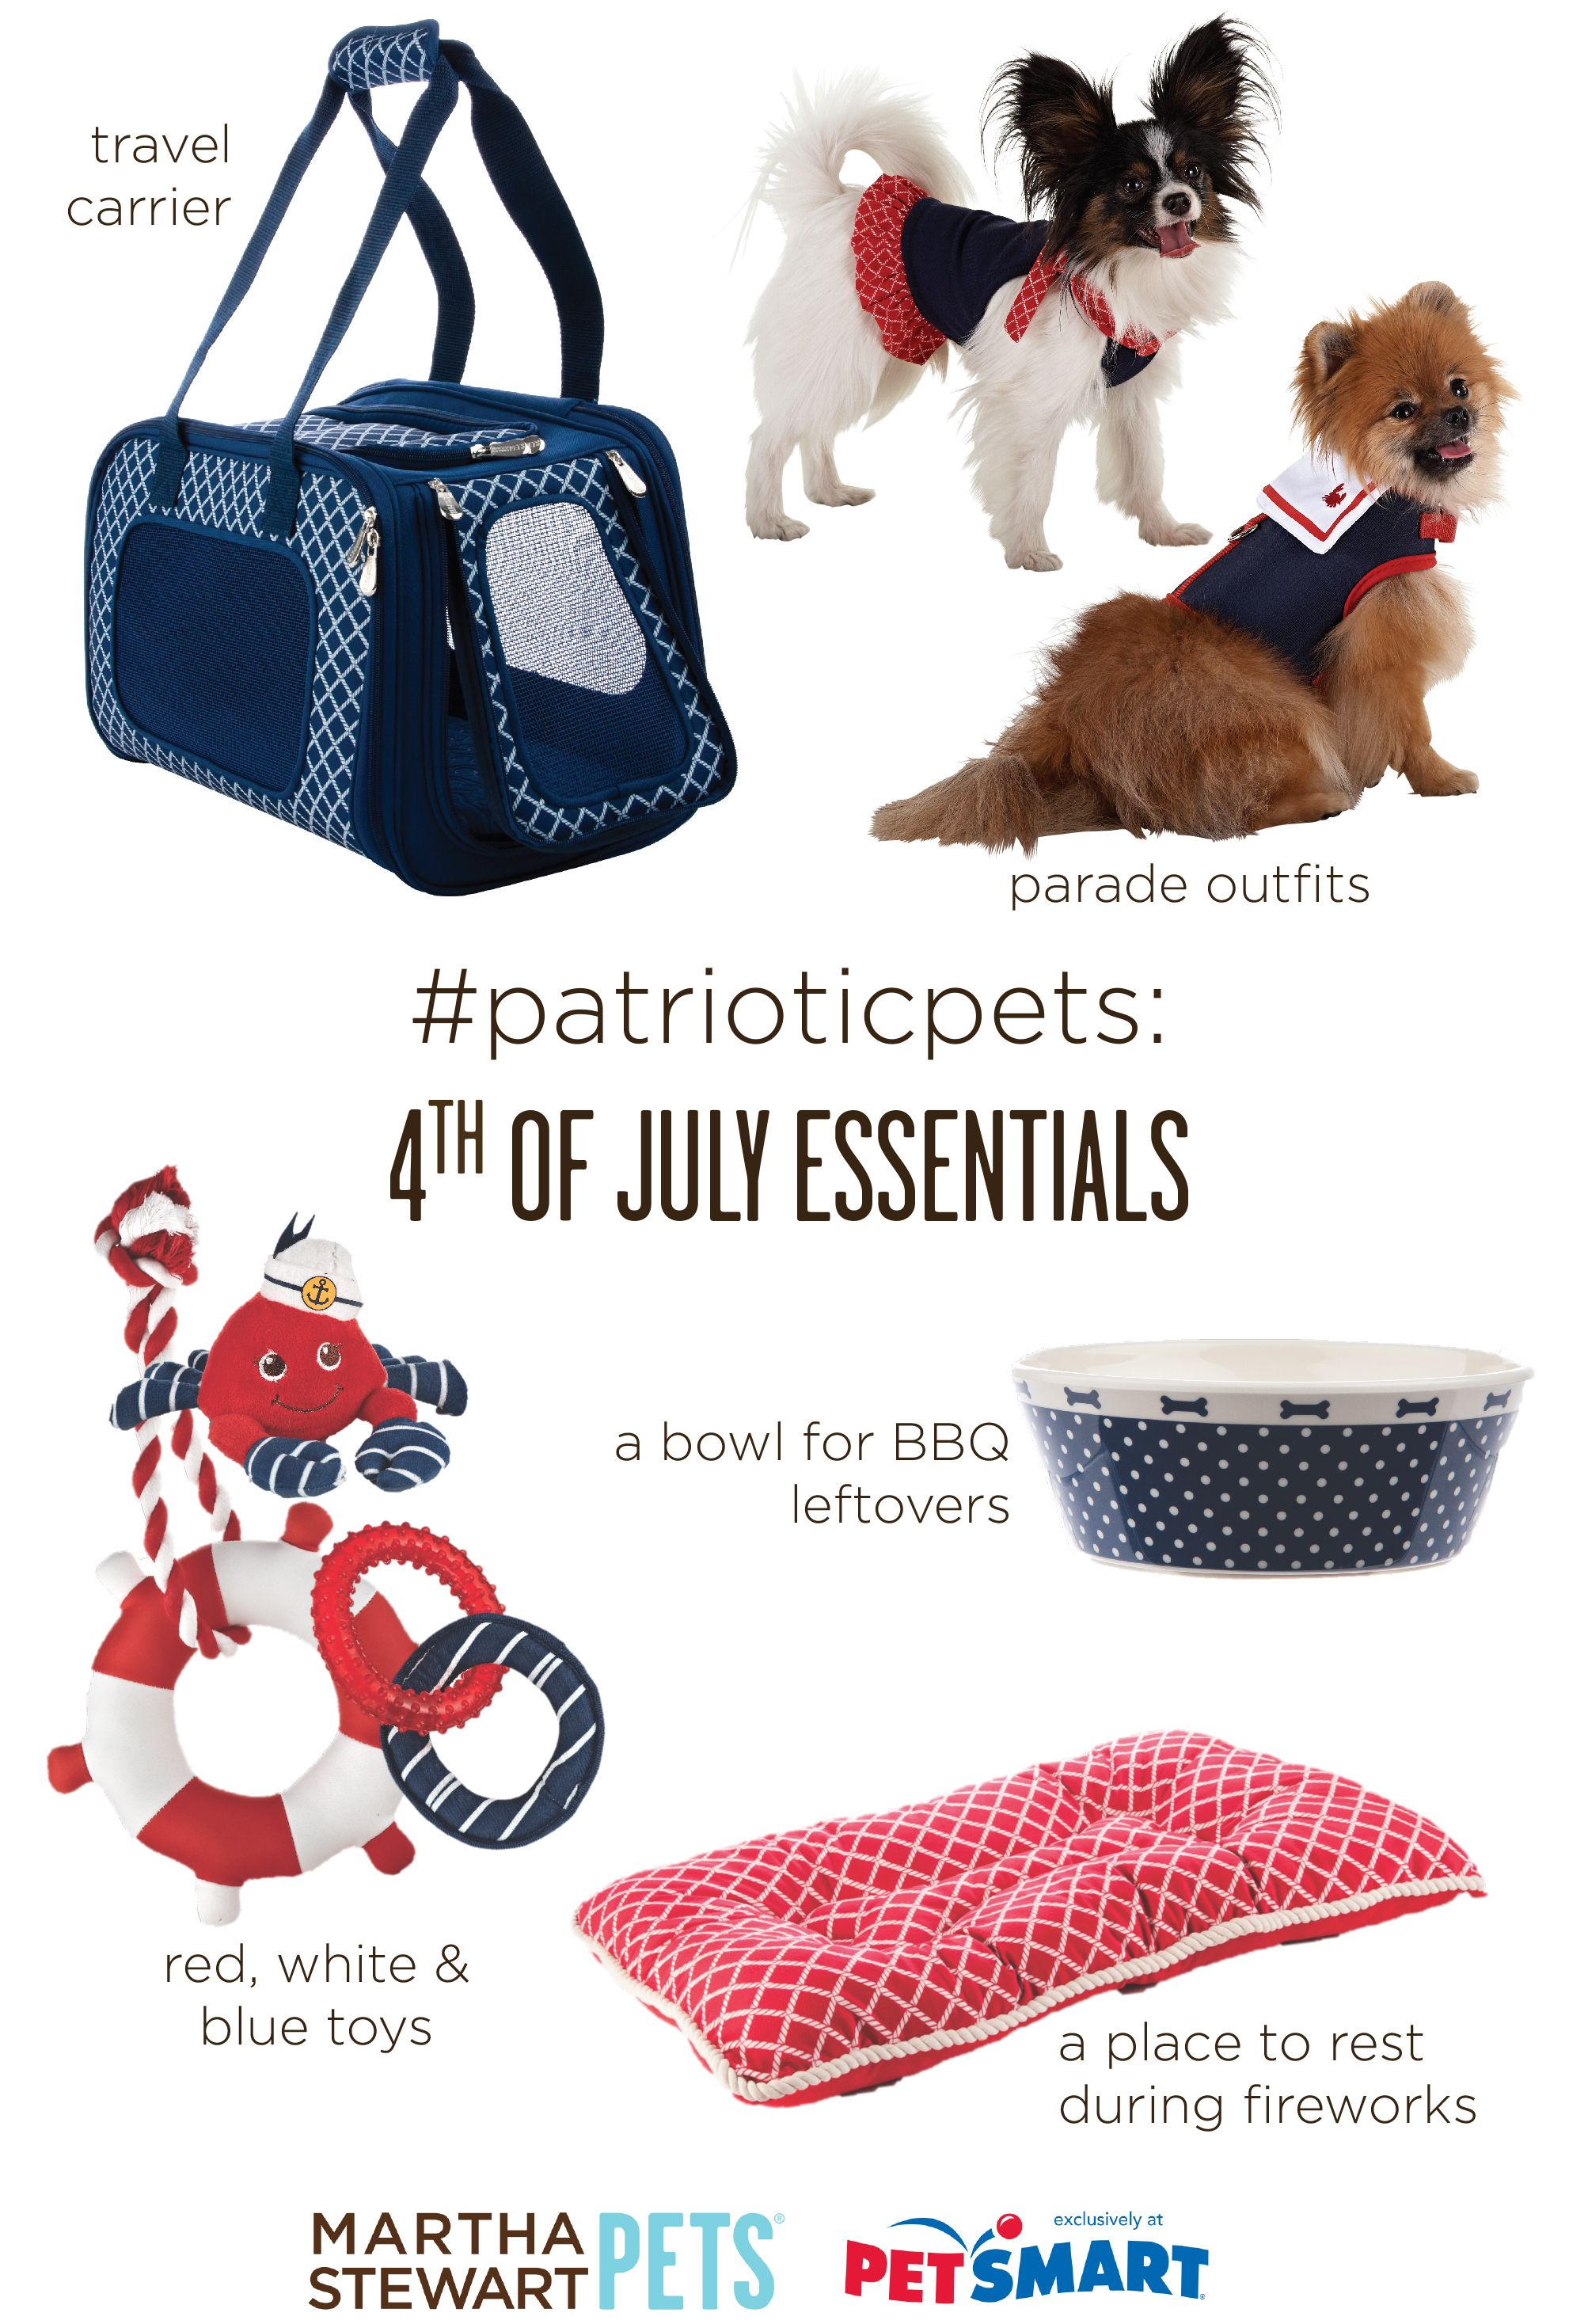 #4thofJuly essentials for your #patrioticpets! #petcare #pettips #petproducts